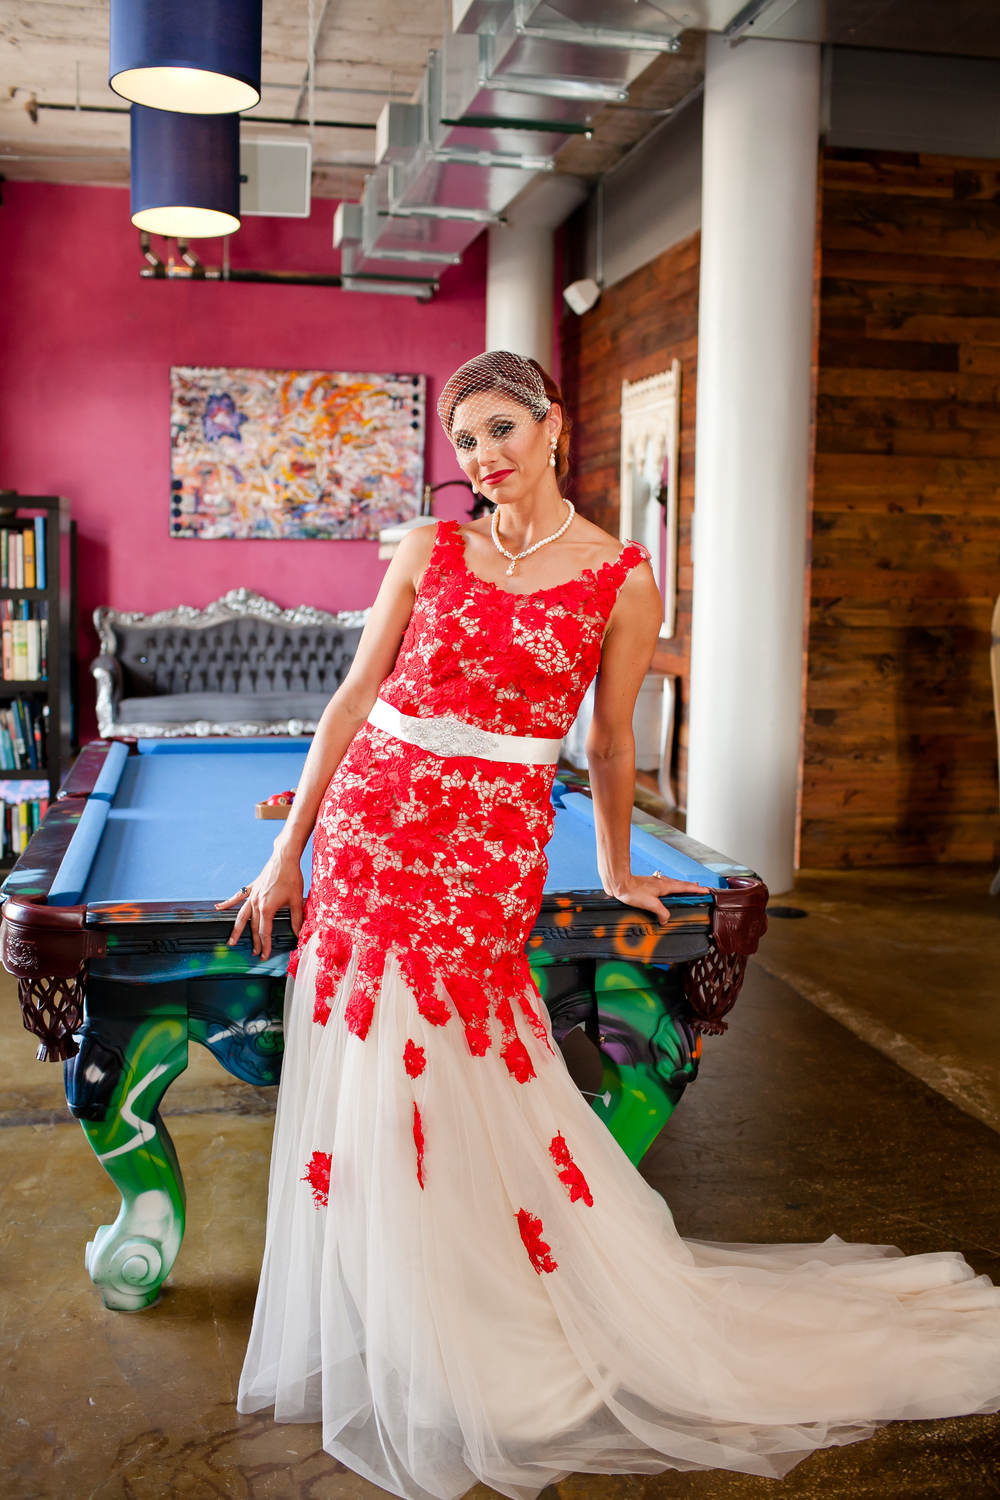 Red Wedding Gown Bride Pool Table NYLO Dallas